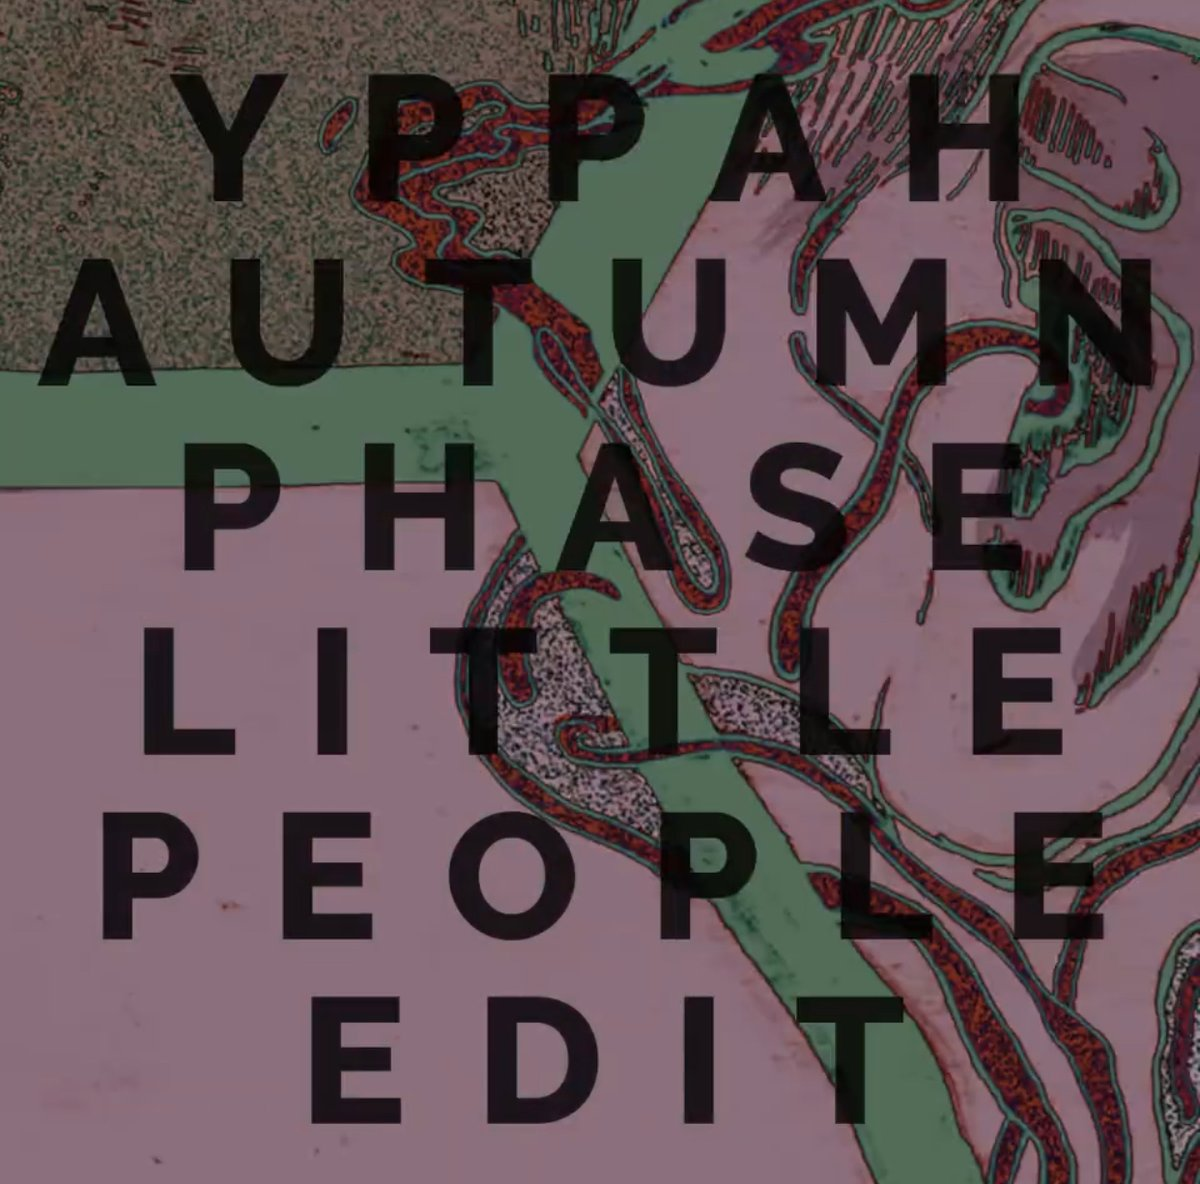 ICYMI - @LittlepeopleM edit of the @_Yppah_ track 'Autumn Phase'. Check it out wherever you listen to music --> https://t.co/Hf1iBFKenw  #littlepeople #littlepeoplemusic #yppah #autumnphase #remix #remixes #futurearchiverecordings #downtempo #electronicmusic #chillout #chill https://t.co/2s5v9C5DMR